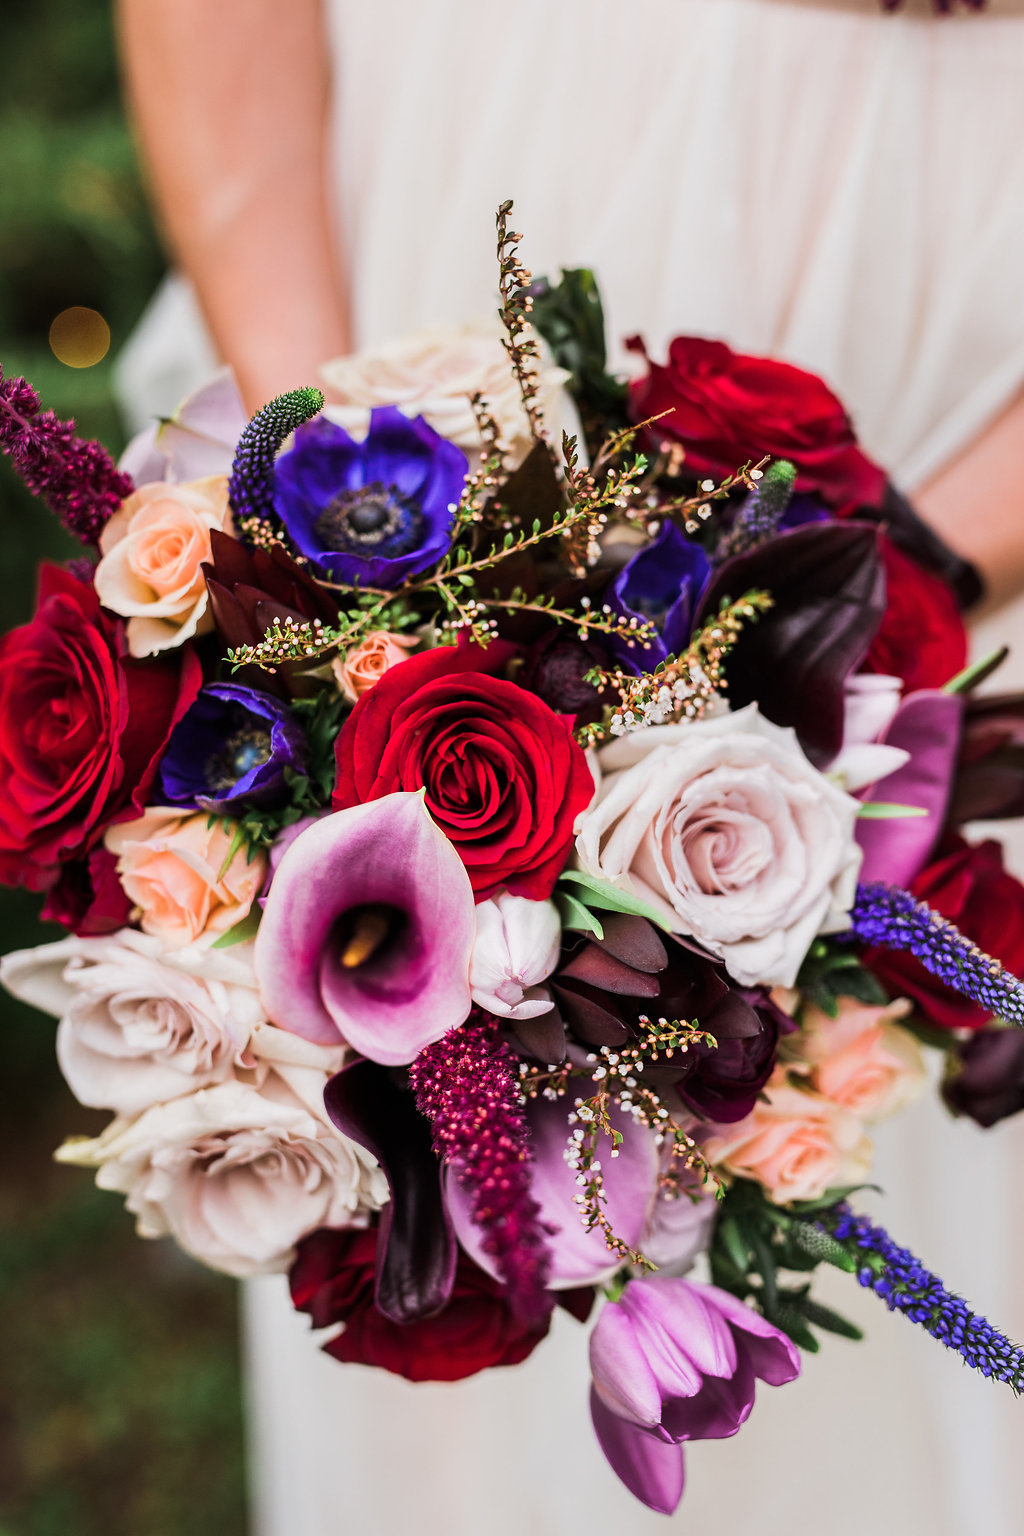 colorful fall wedding bouquets - photo by Katie Ricard Photography http://ruffledblog.com/dramatic-woodland-wedding-inspiration-with-burgundy-accents